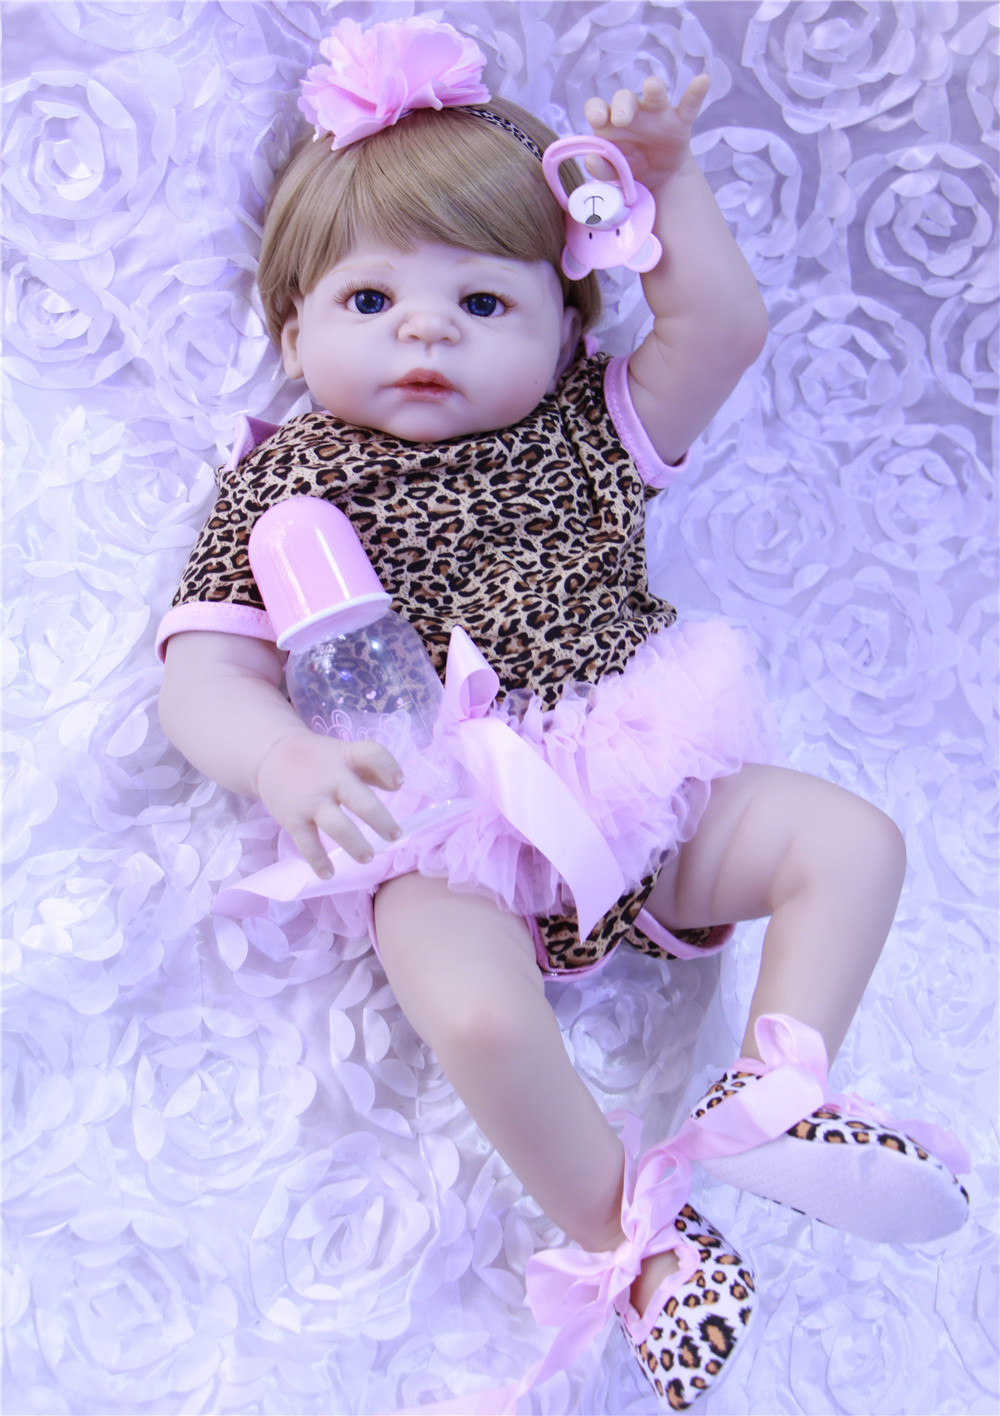 blond hair Reborn Baby Doll Lifelike full Silicone Vinyl Girl Body Newborn Babies 55cm blue eyes princess Kids Birthday Gift toyblond hair Reborn Baby Doll Lifelike full Silicone Vinyl Girl Body Newborn Babies 55cm blue eyes princess Kids Birthday Gift toy